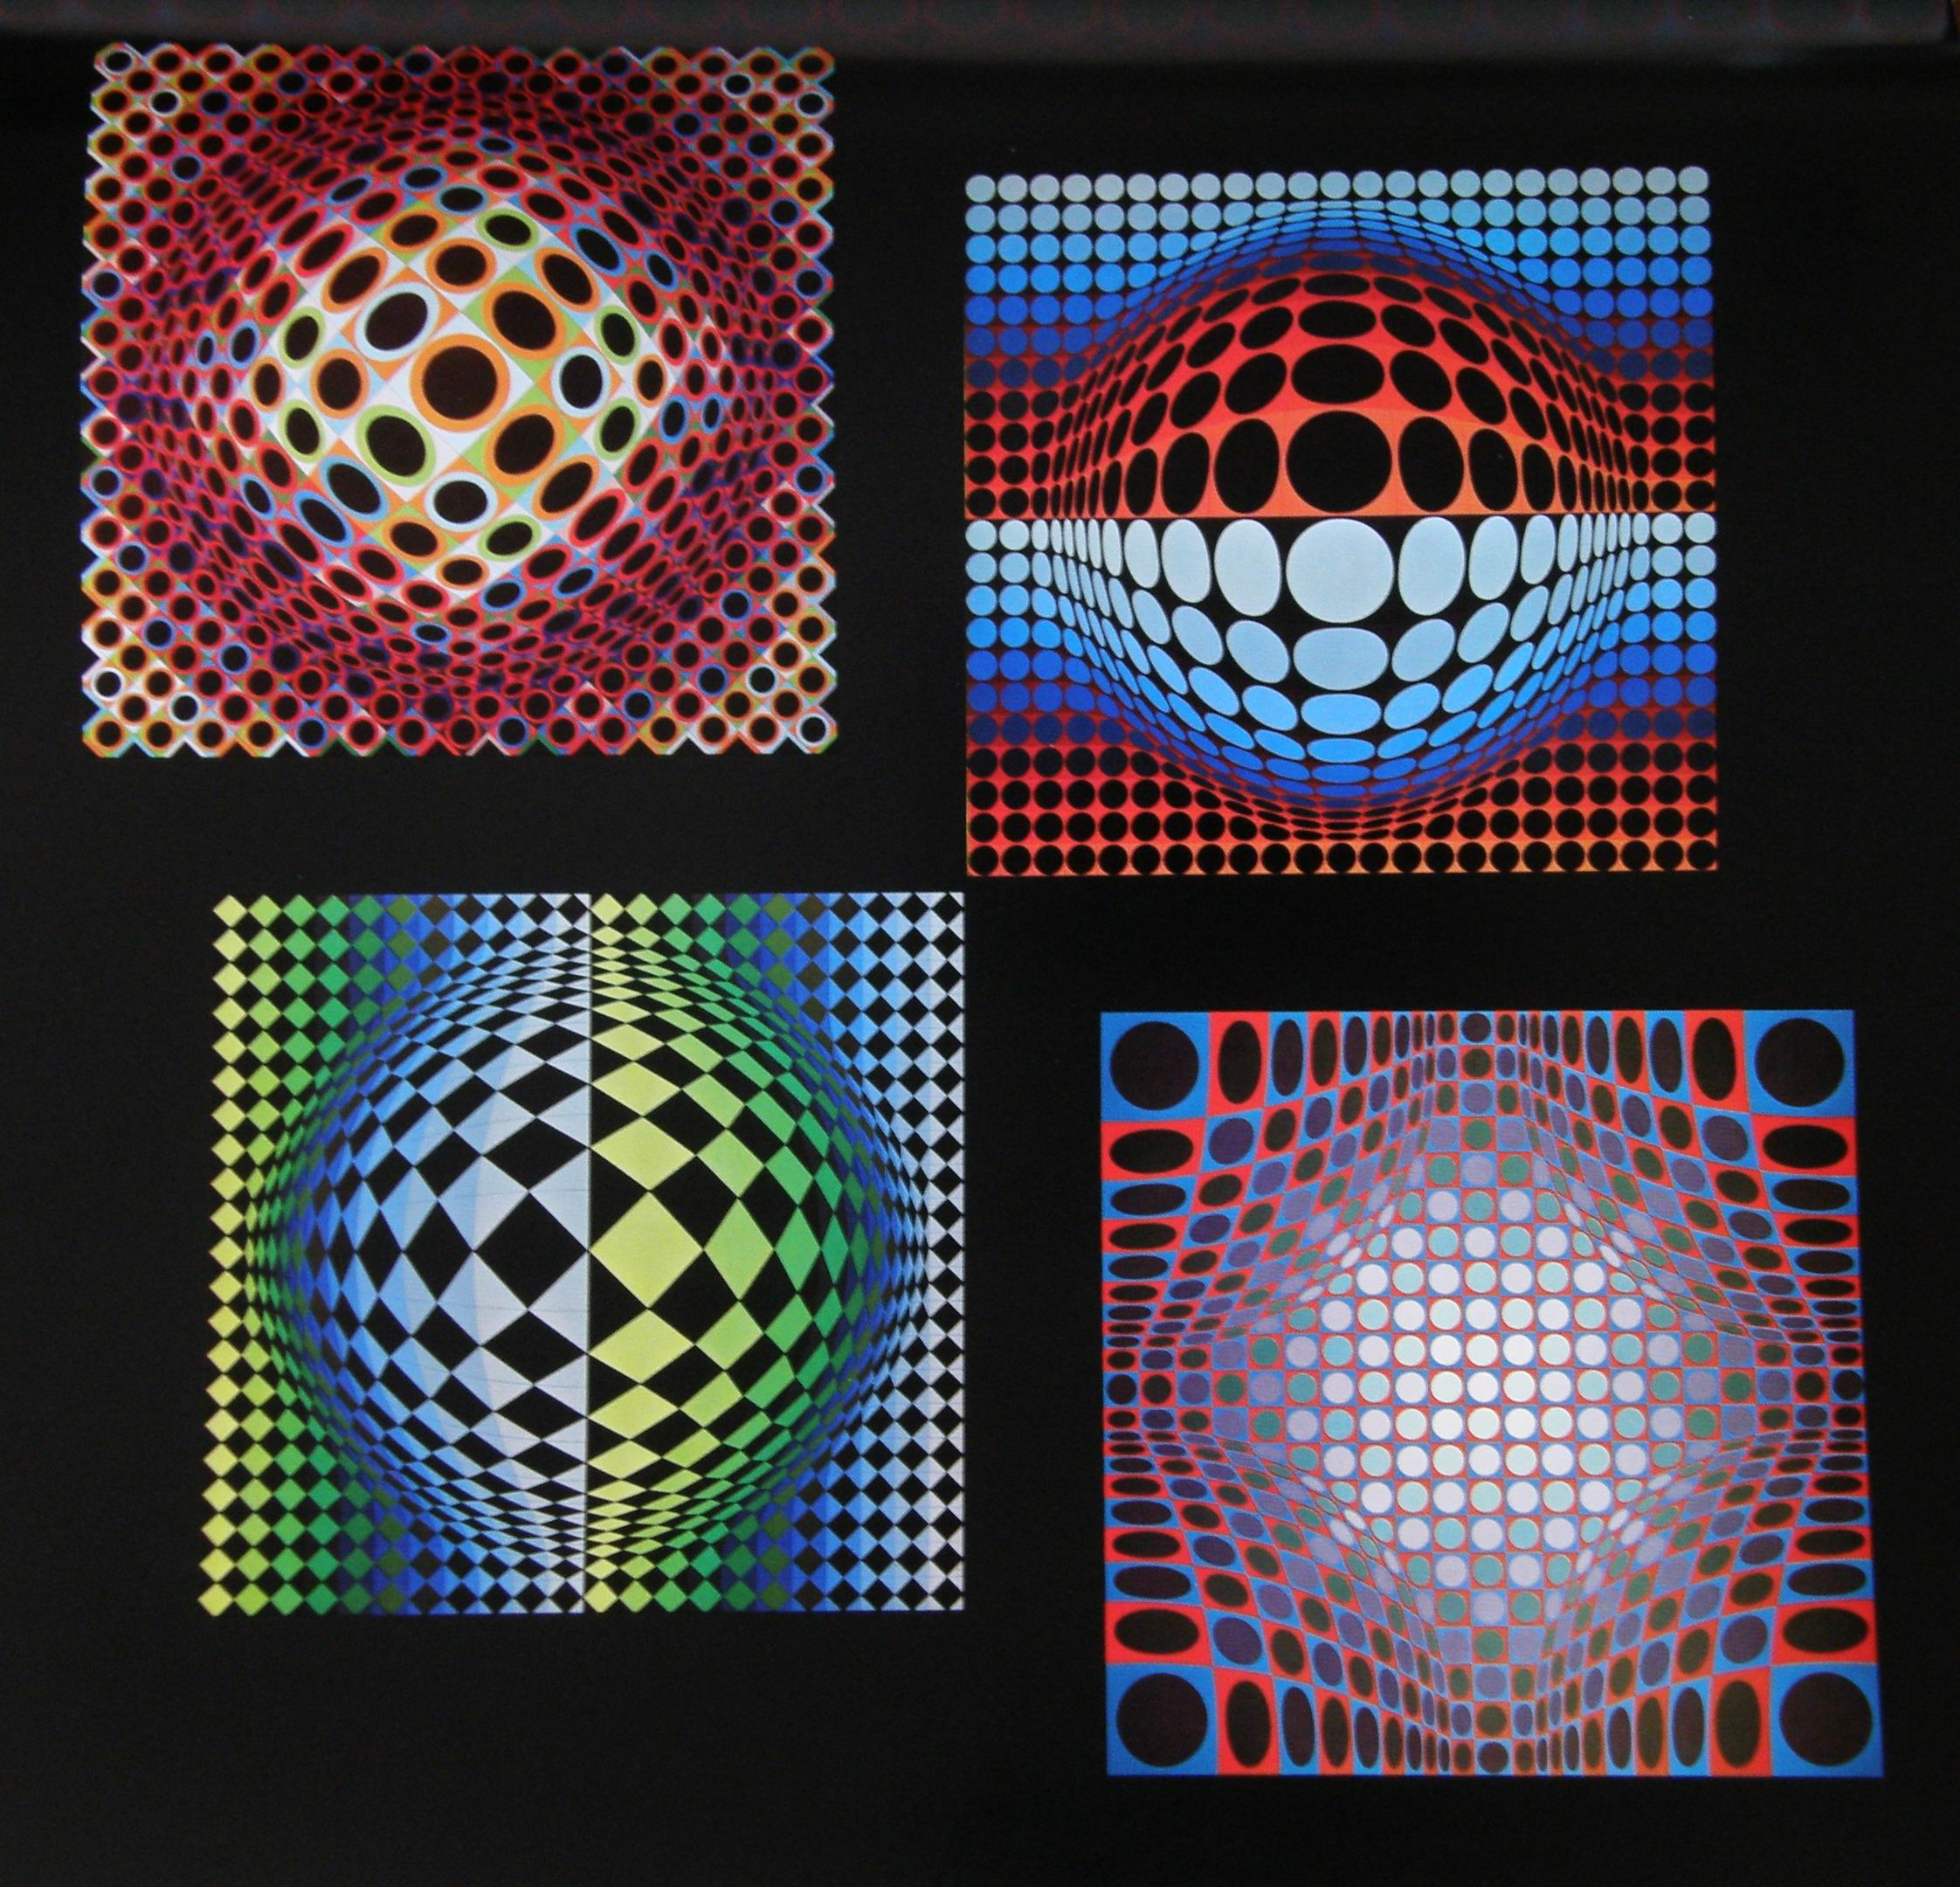 Biography of victor vasarely |work by victor vasarely ...